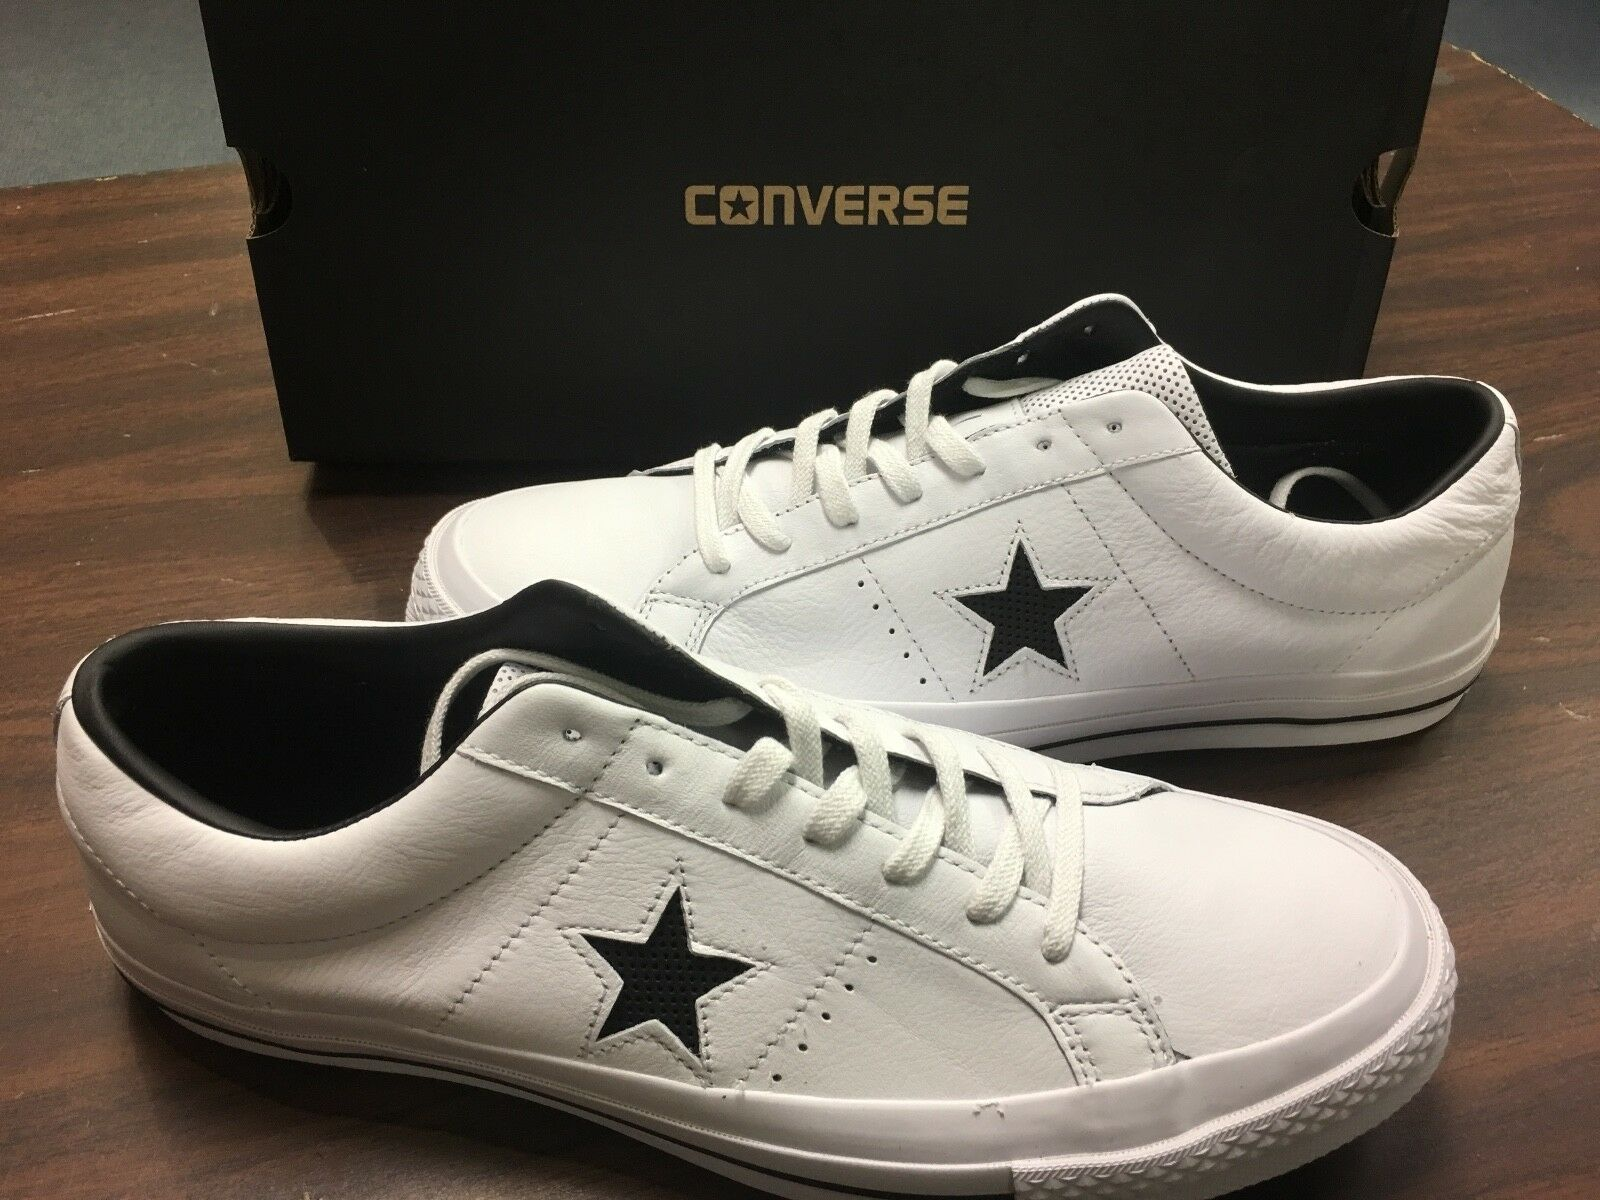 CONVERSE MENS ONE STAR OX WHITE/ BLACK/ WHITE 158464C SIZE 11.5